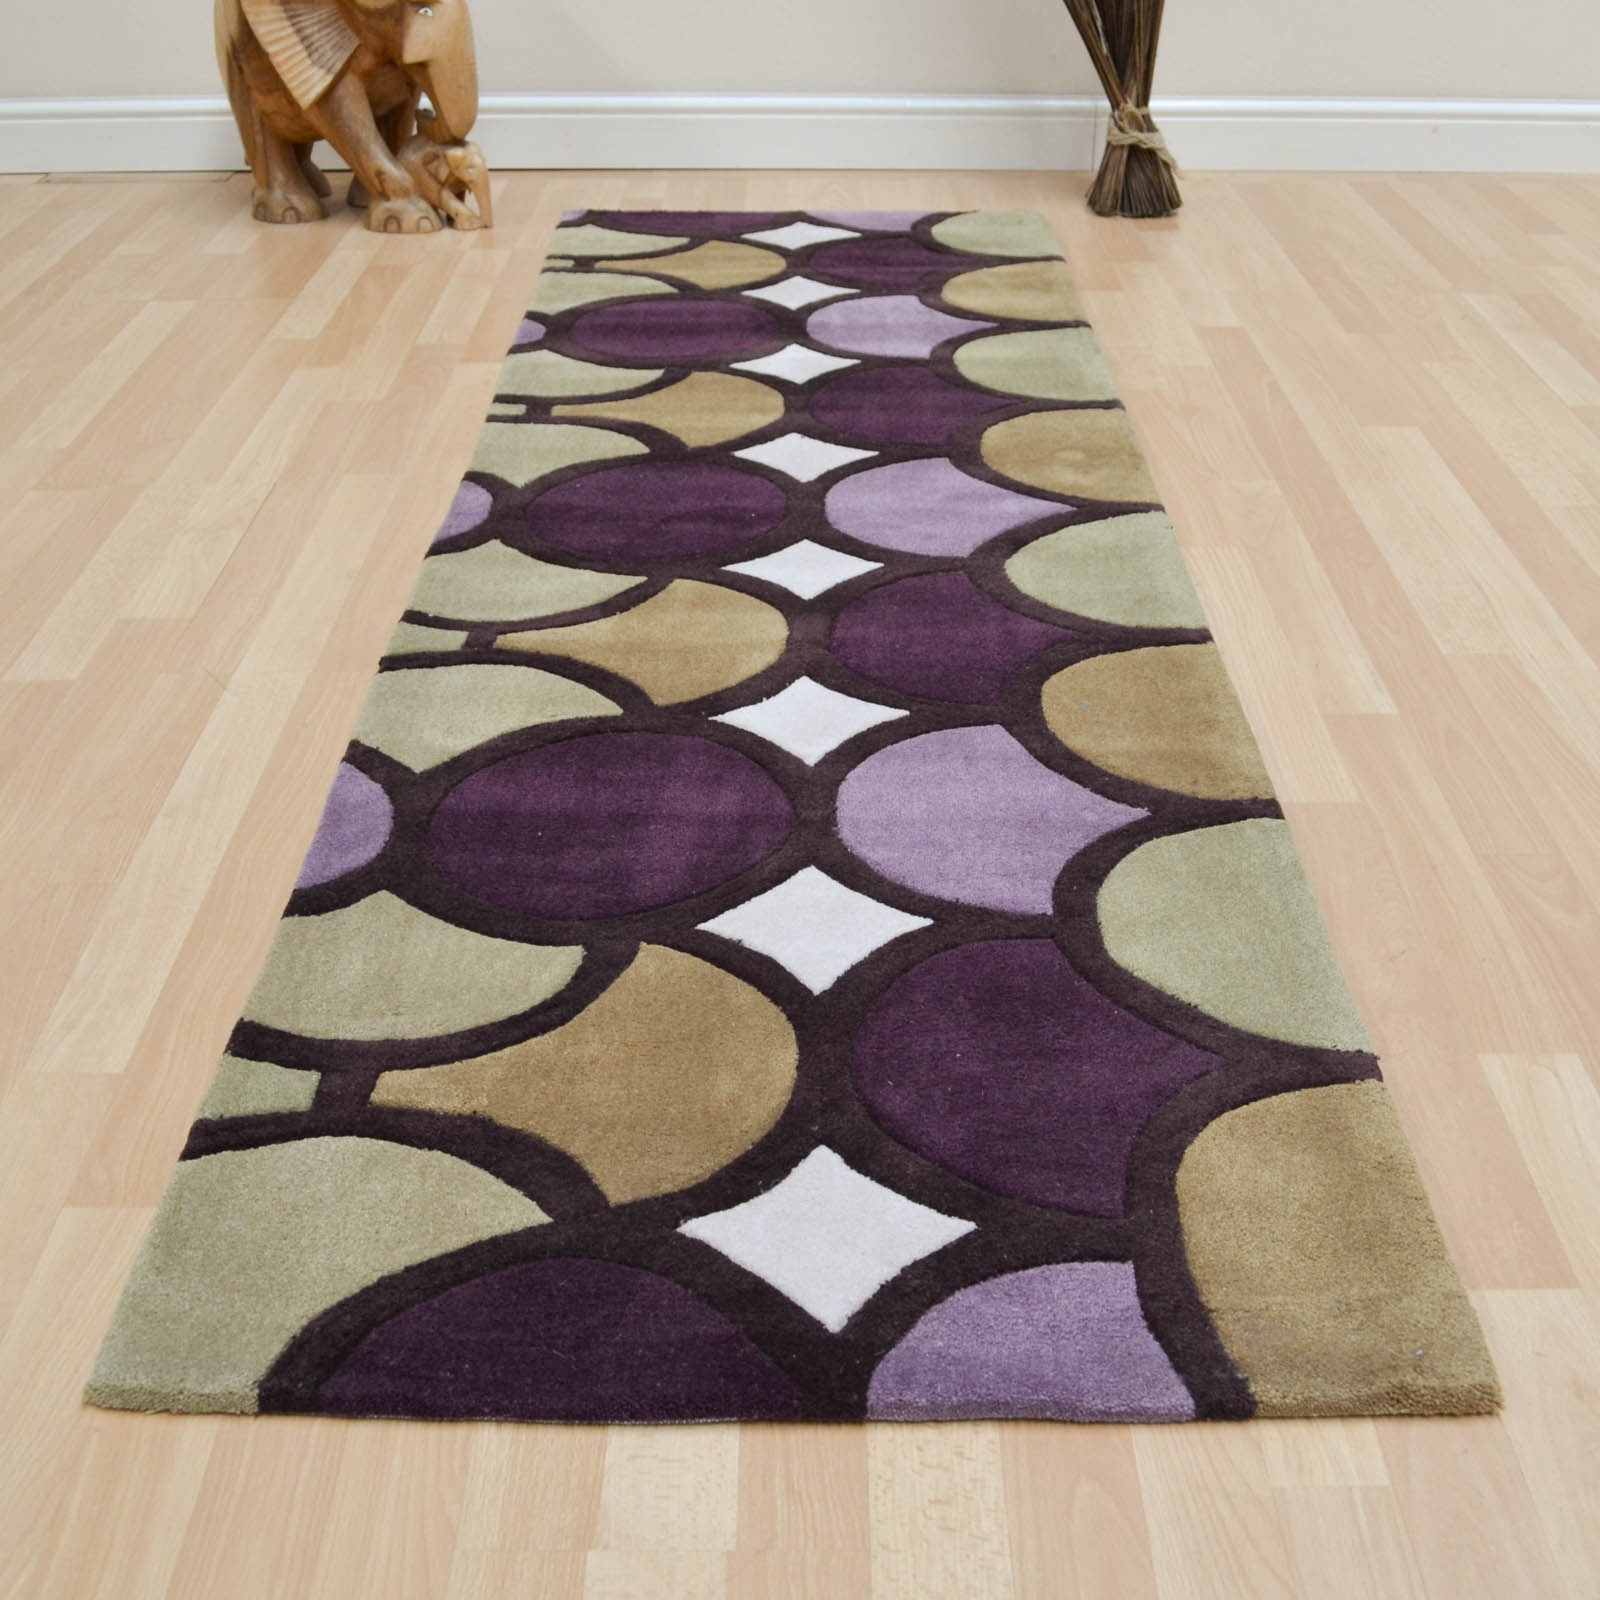 Hall Runner Rugs Uk Roselawnlutheran With Regard To Cheap Hallway Runners (#15 of 20)